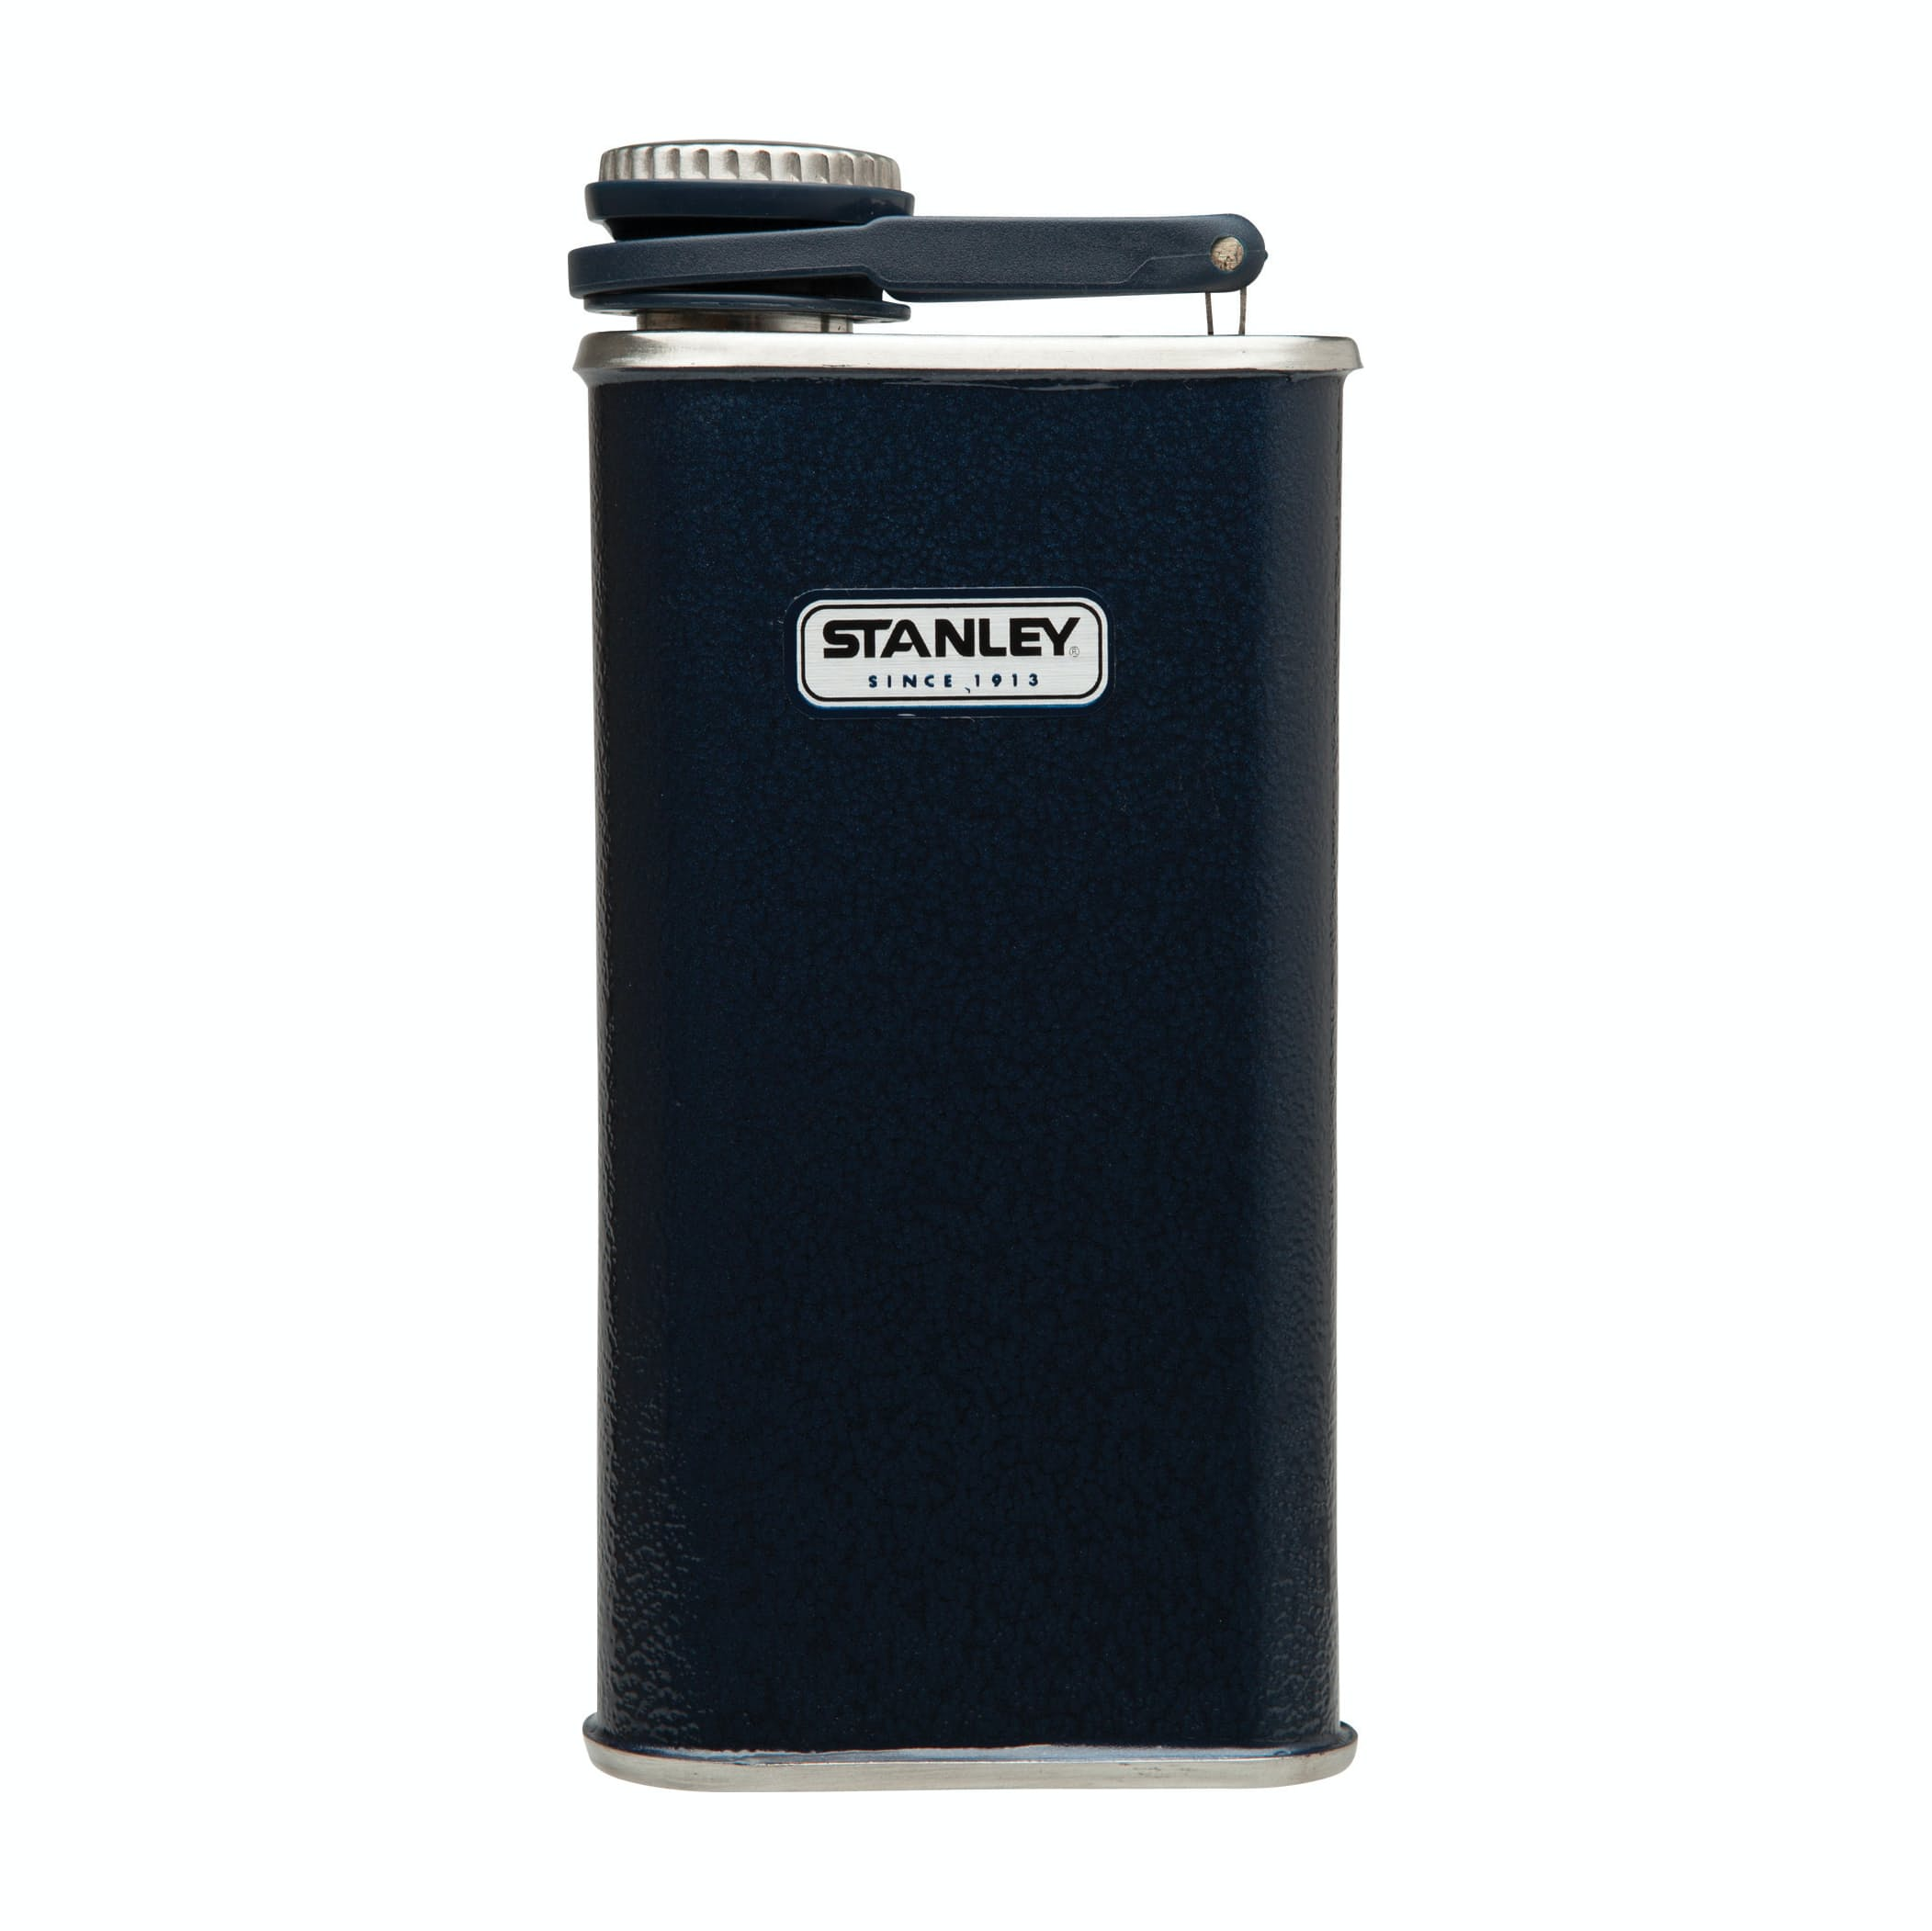 J9pmqb9yum stanley flask 8 oz 0 original